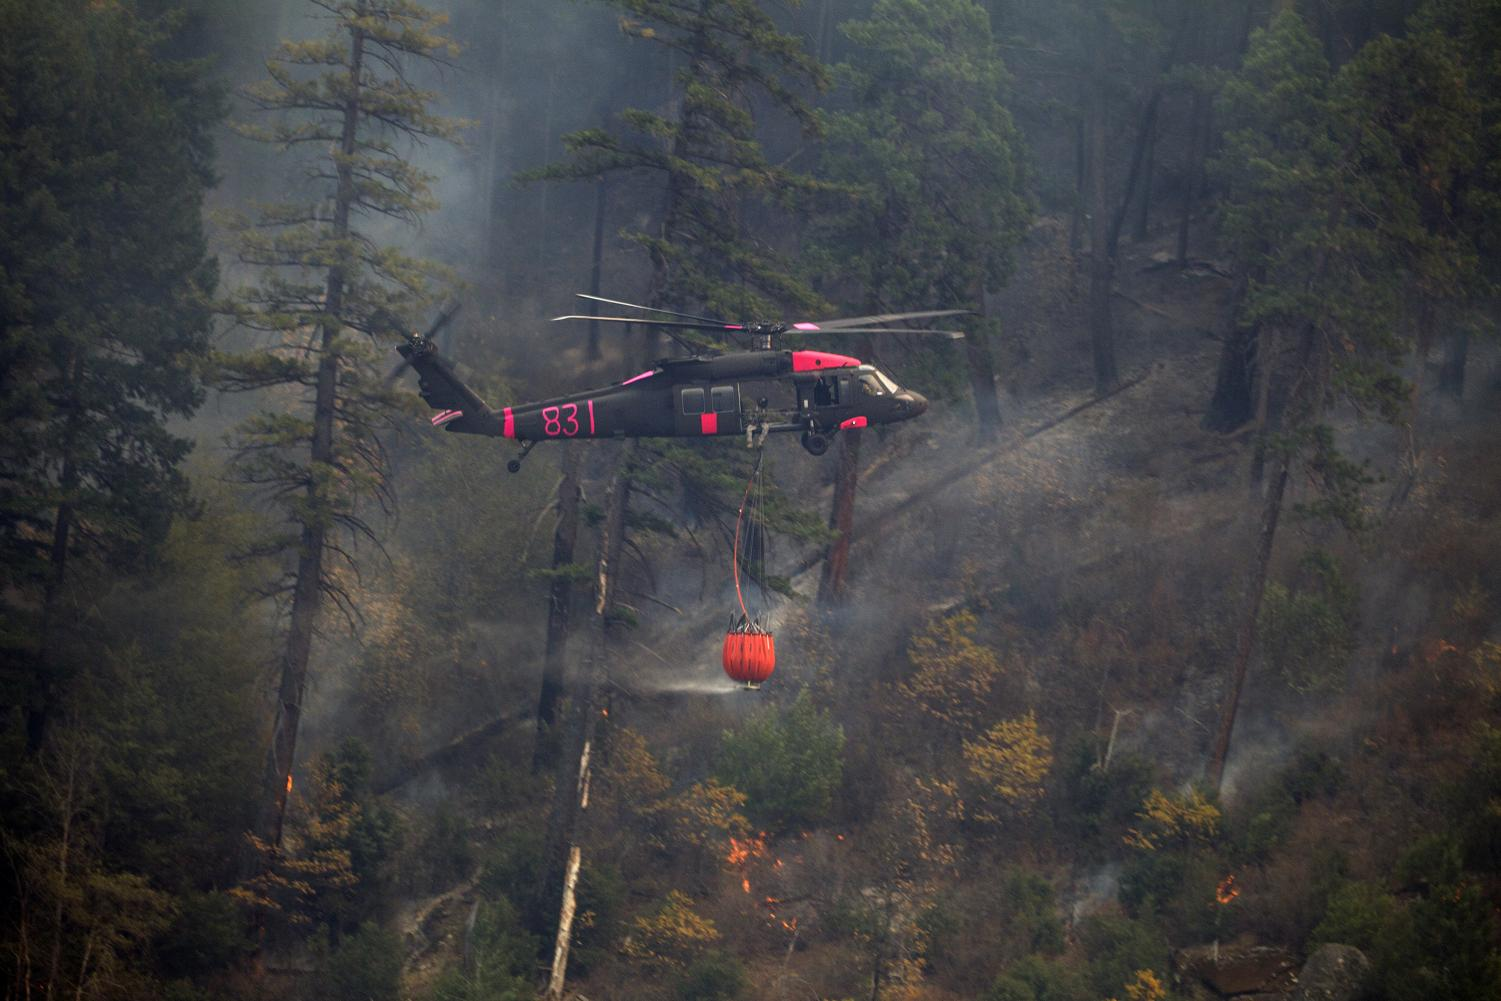 Crews battle the fire up in northern California. At least 88 people died in the Camp Fire.